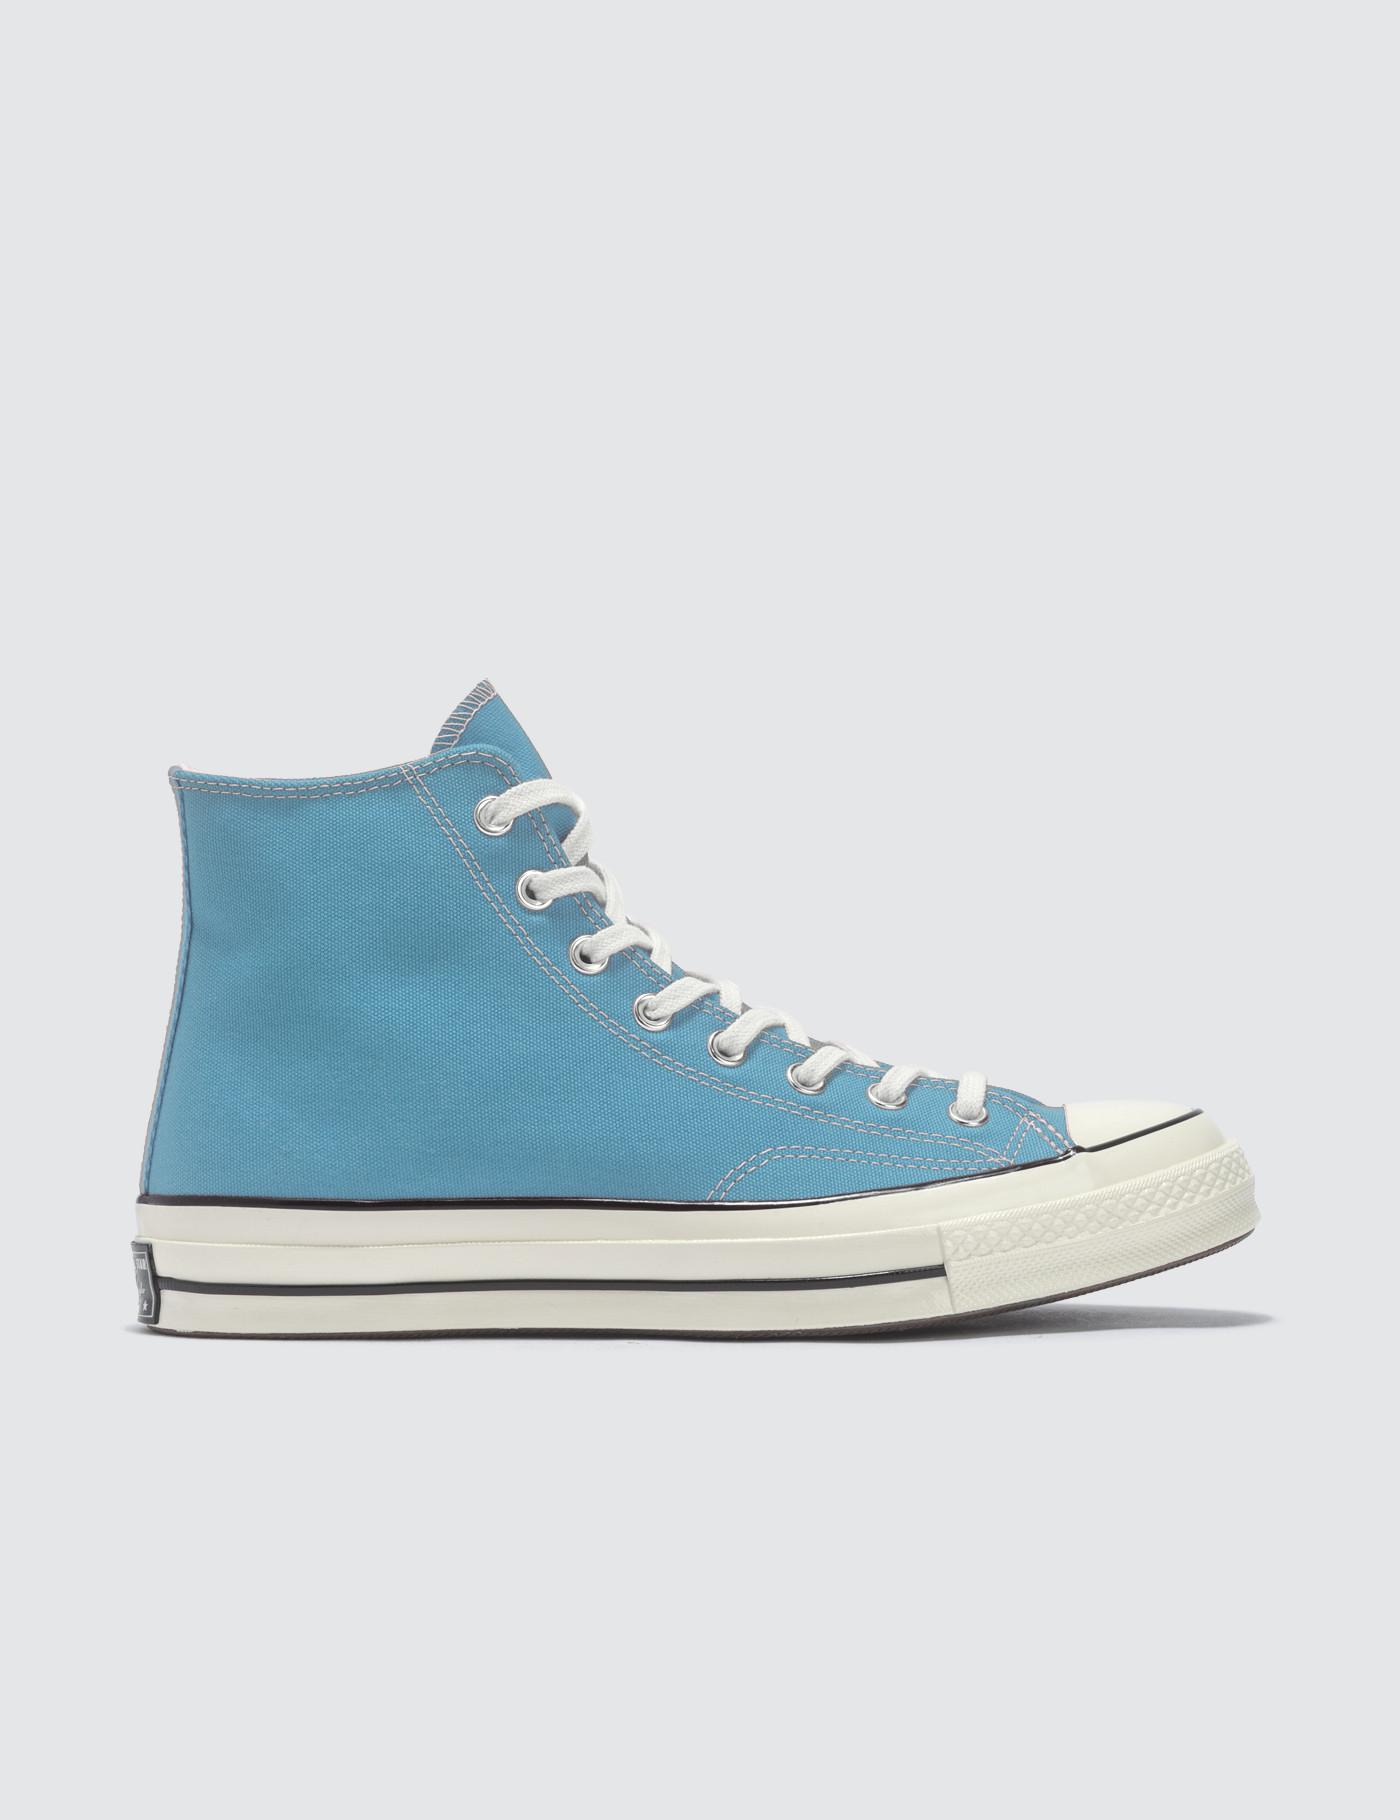 Lyst - Converse Chuck Taylor All Star  70 in Blue for Men ee62639ac